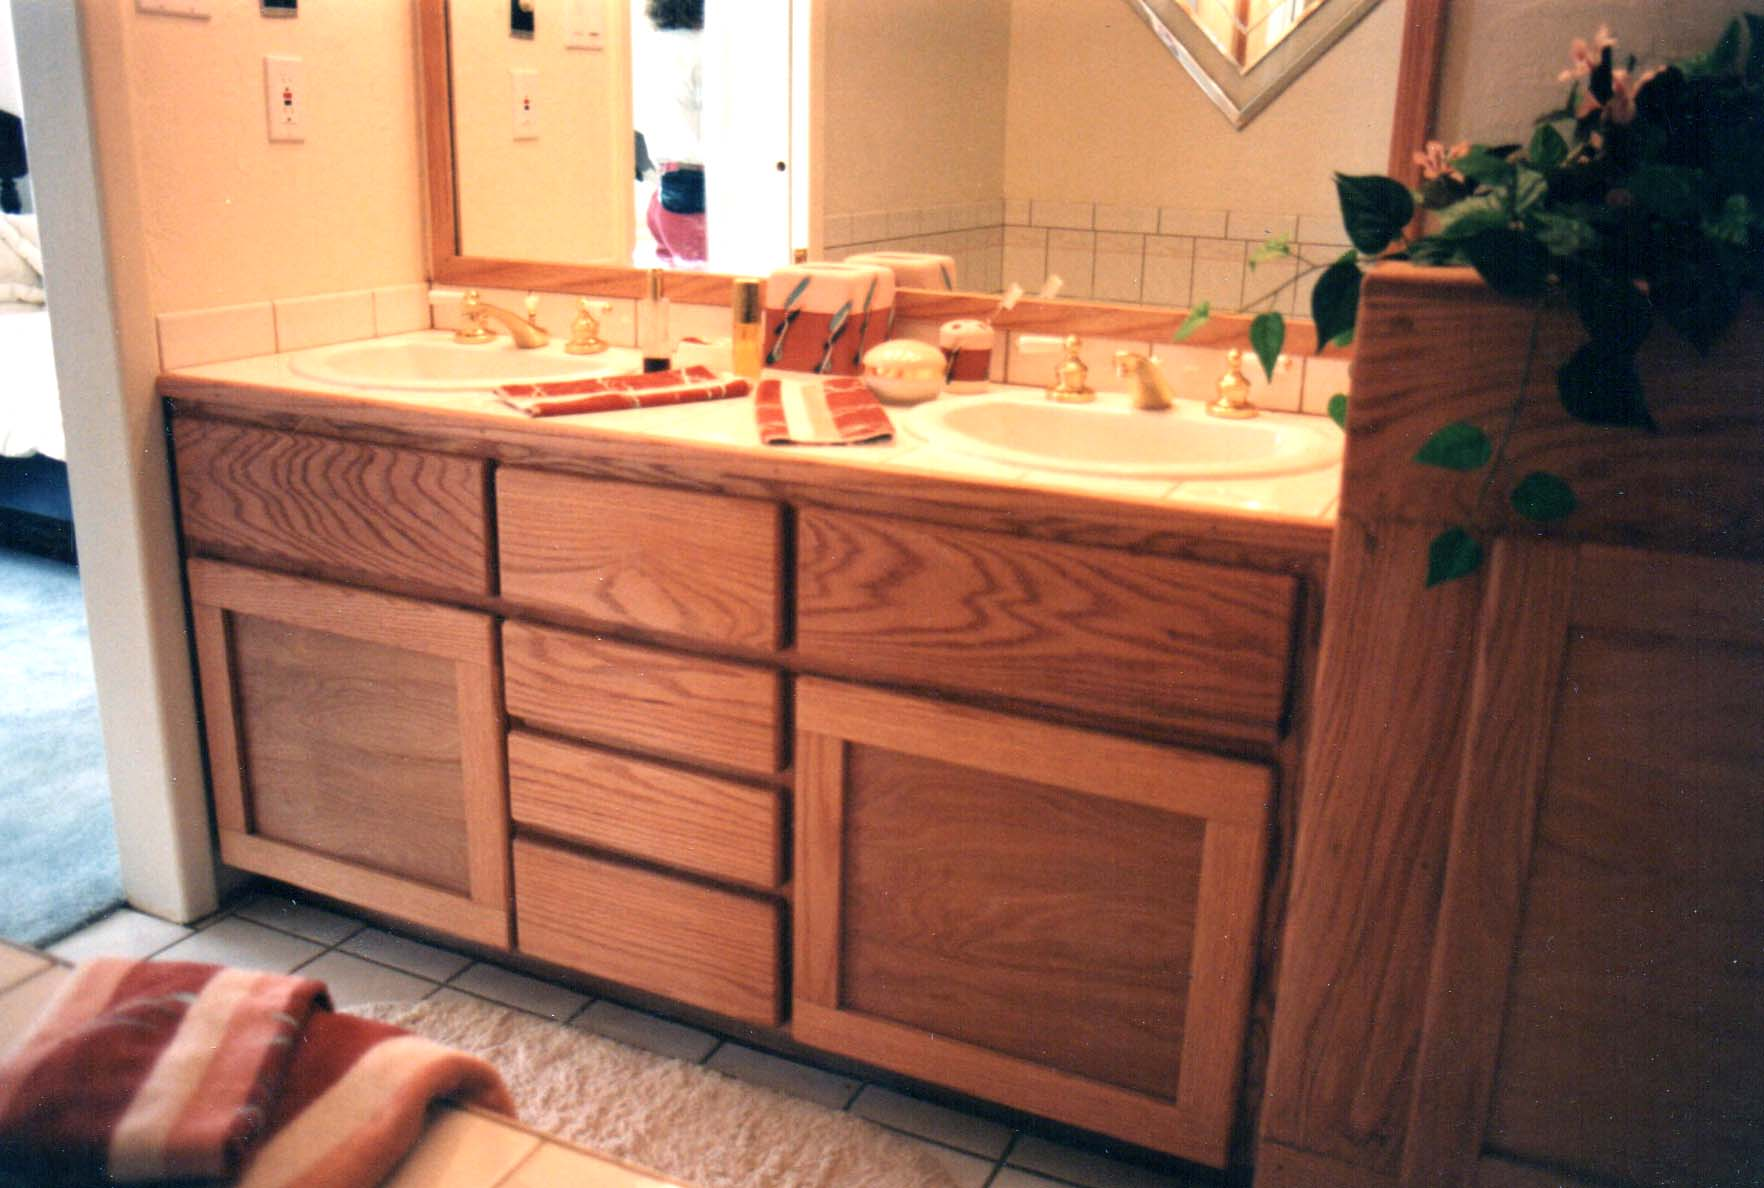 Bathroom Cabinetry - Watersong Furniture | Watersong Furniture